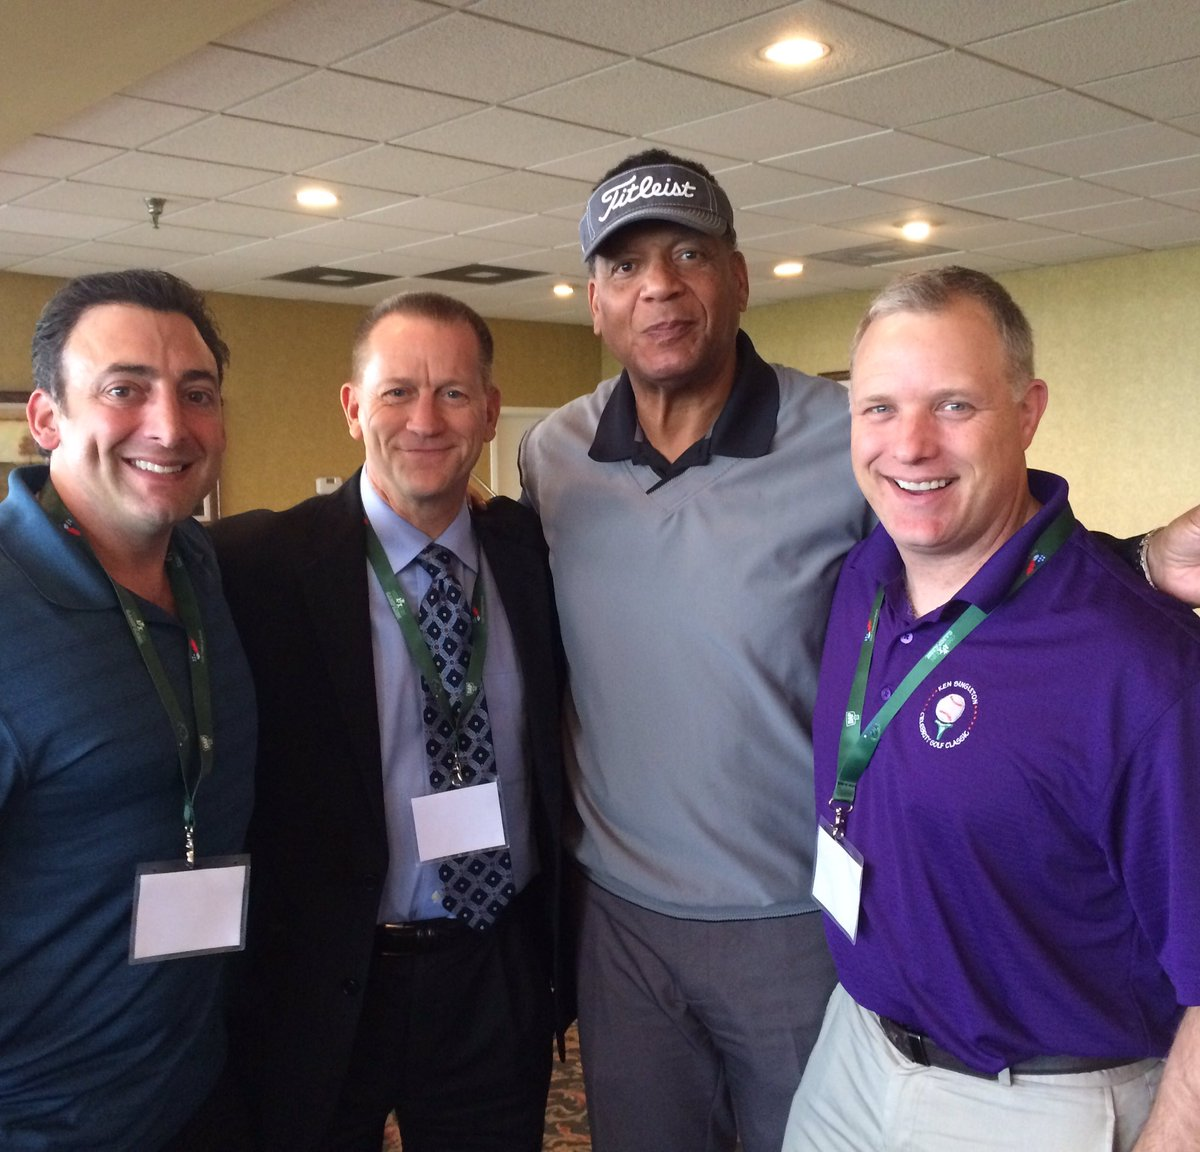 Great to hang w/@WBALPete @KeithMills1090 and Os great Ken Singleton announcing @CoolKidsOrg Celeb Golf Classic